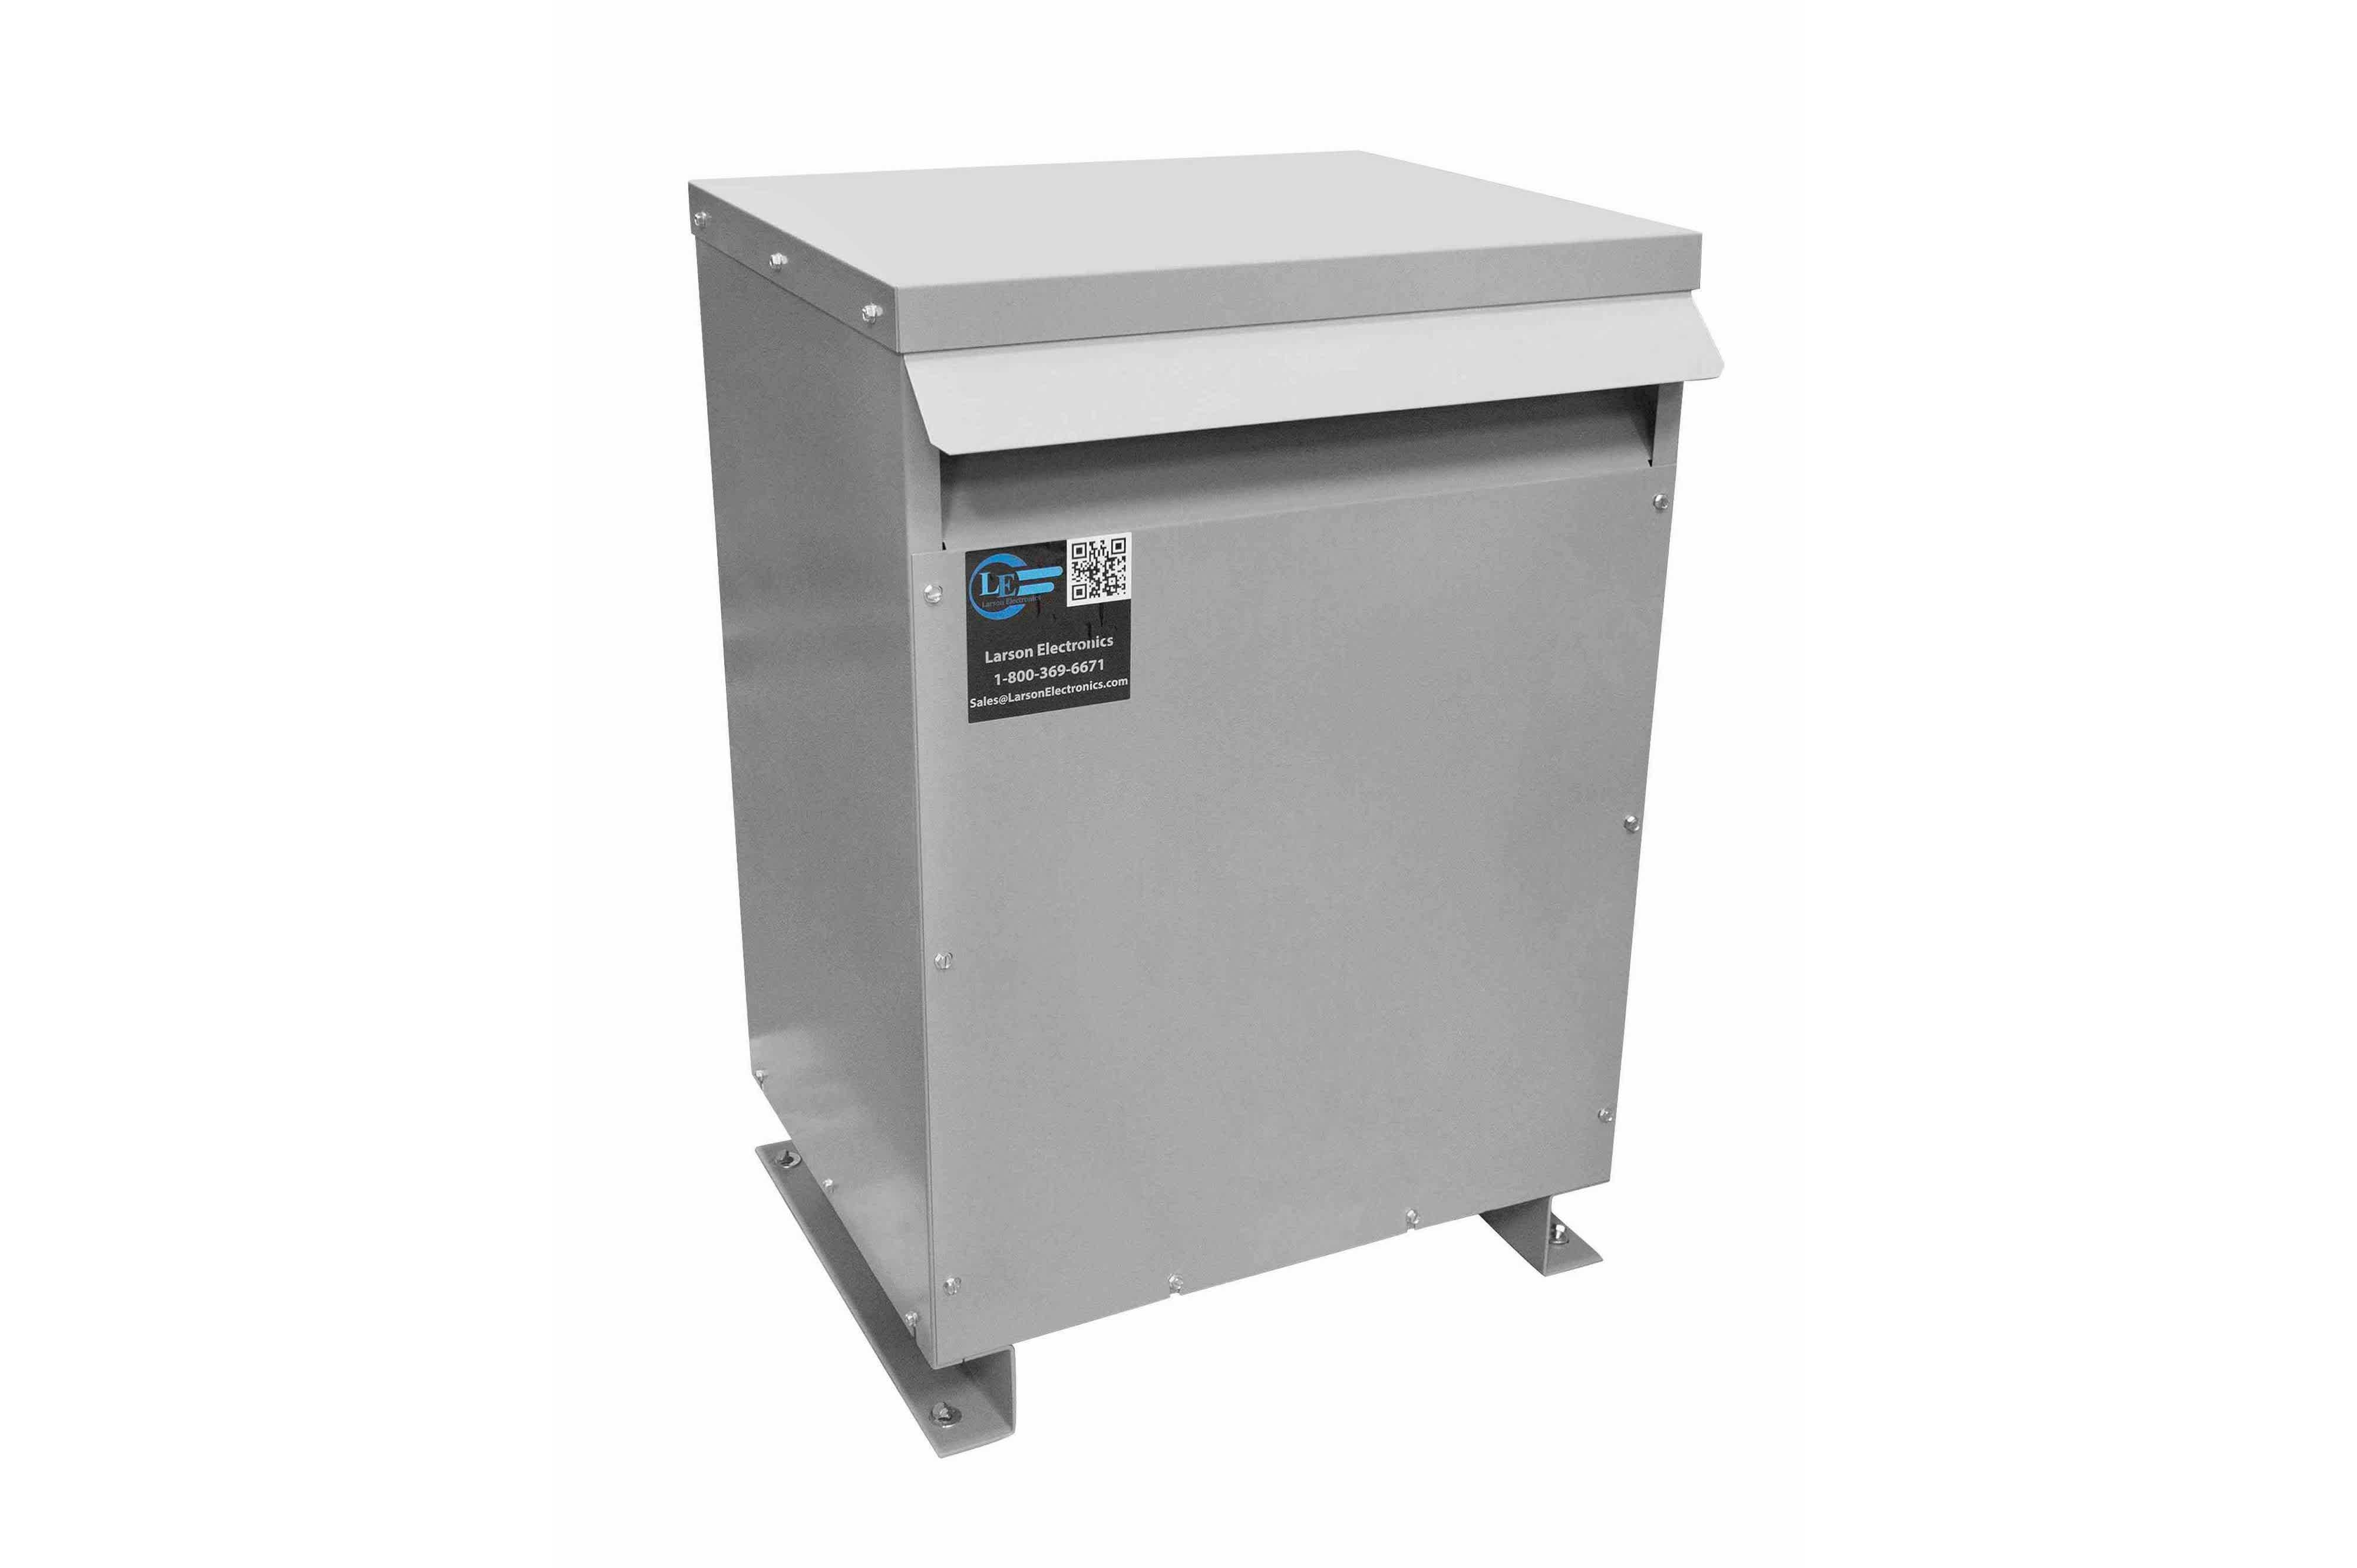 800 kVA 3PH DOE Transformer, 400V Delta Primary, 600Y/347 Wye-N Secondary, N3R, Ventilated, 60 Hz